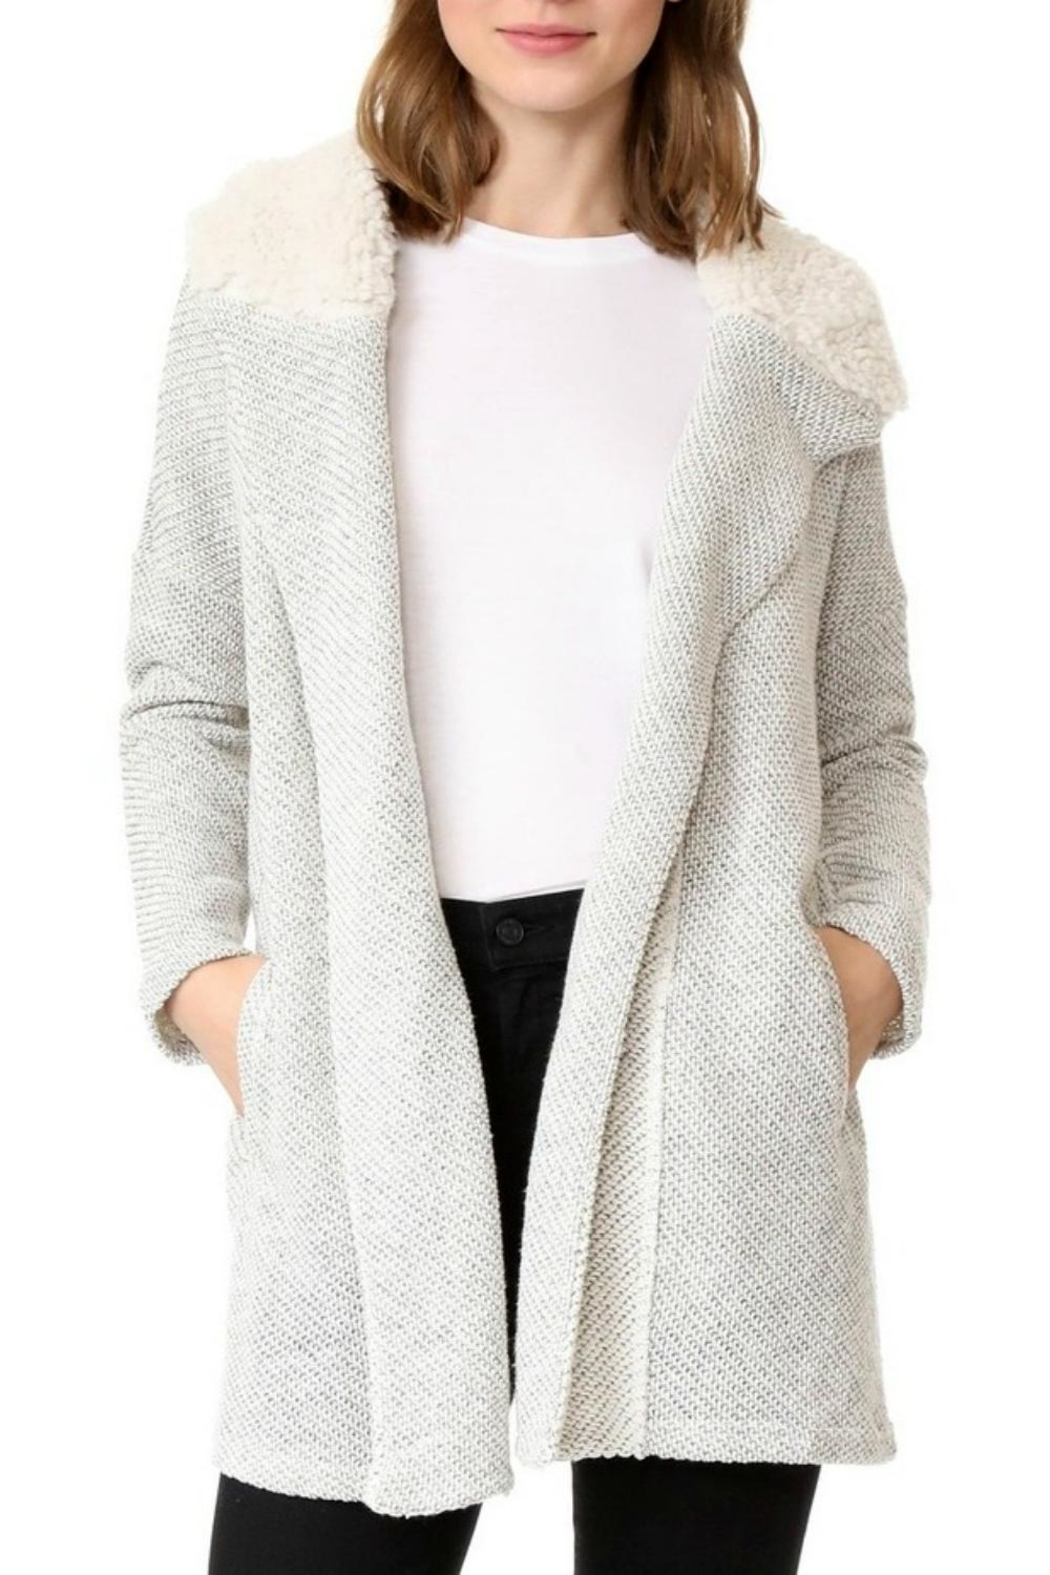 Jack by BB Dakota Connelly Fluffy Cardigan from New Jersey by Wink ...